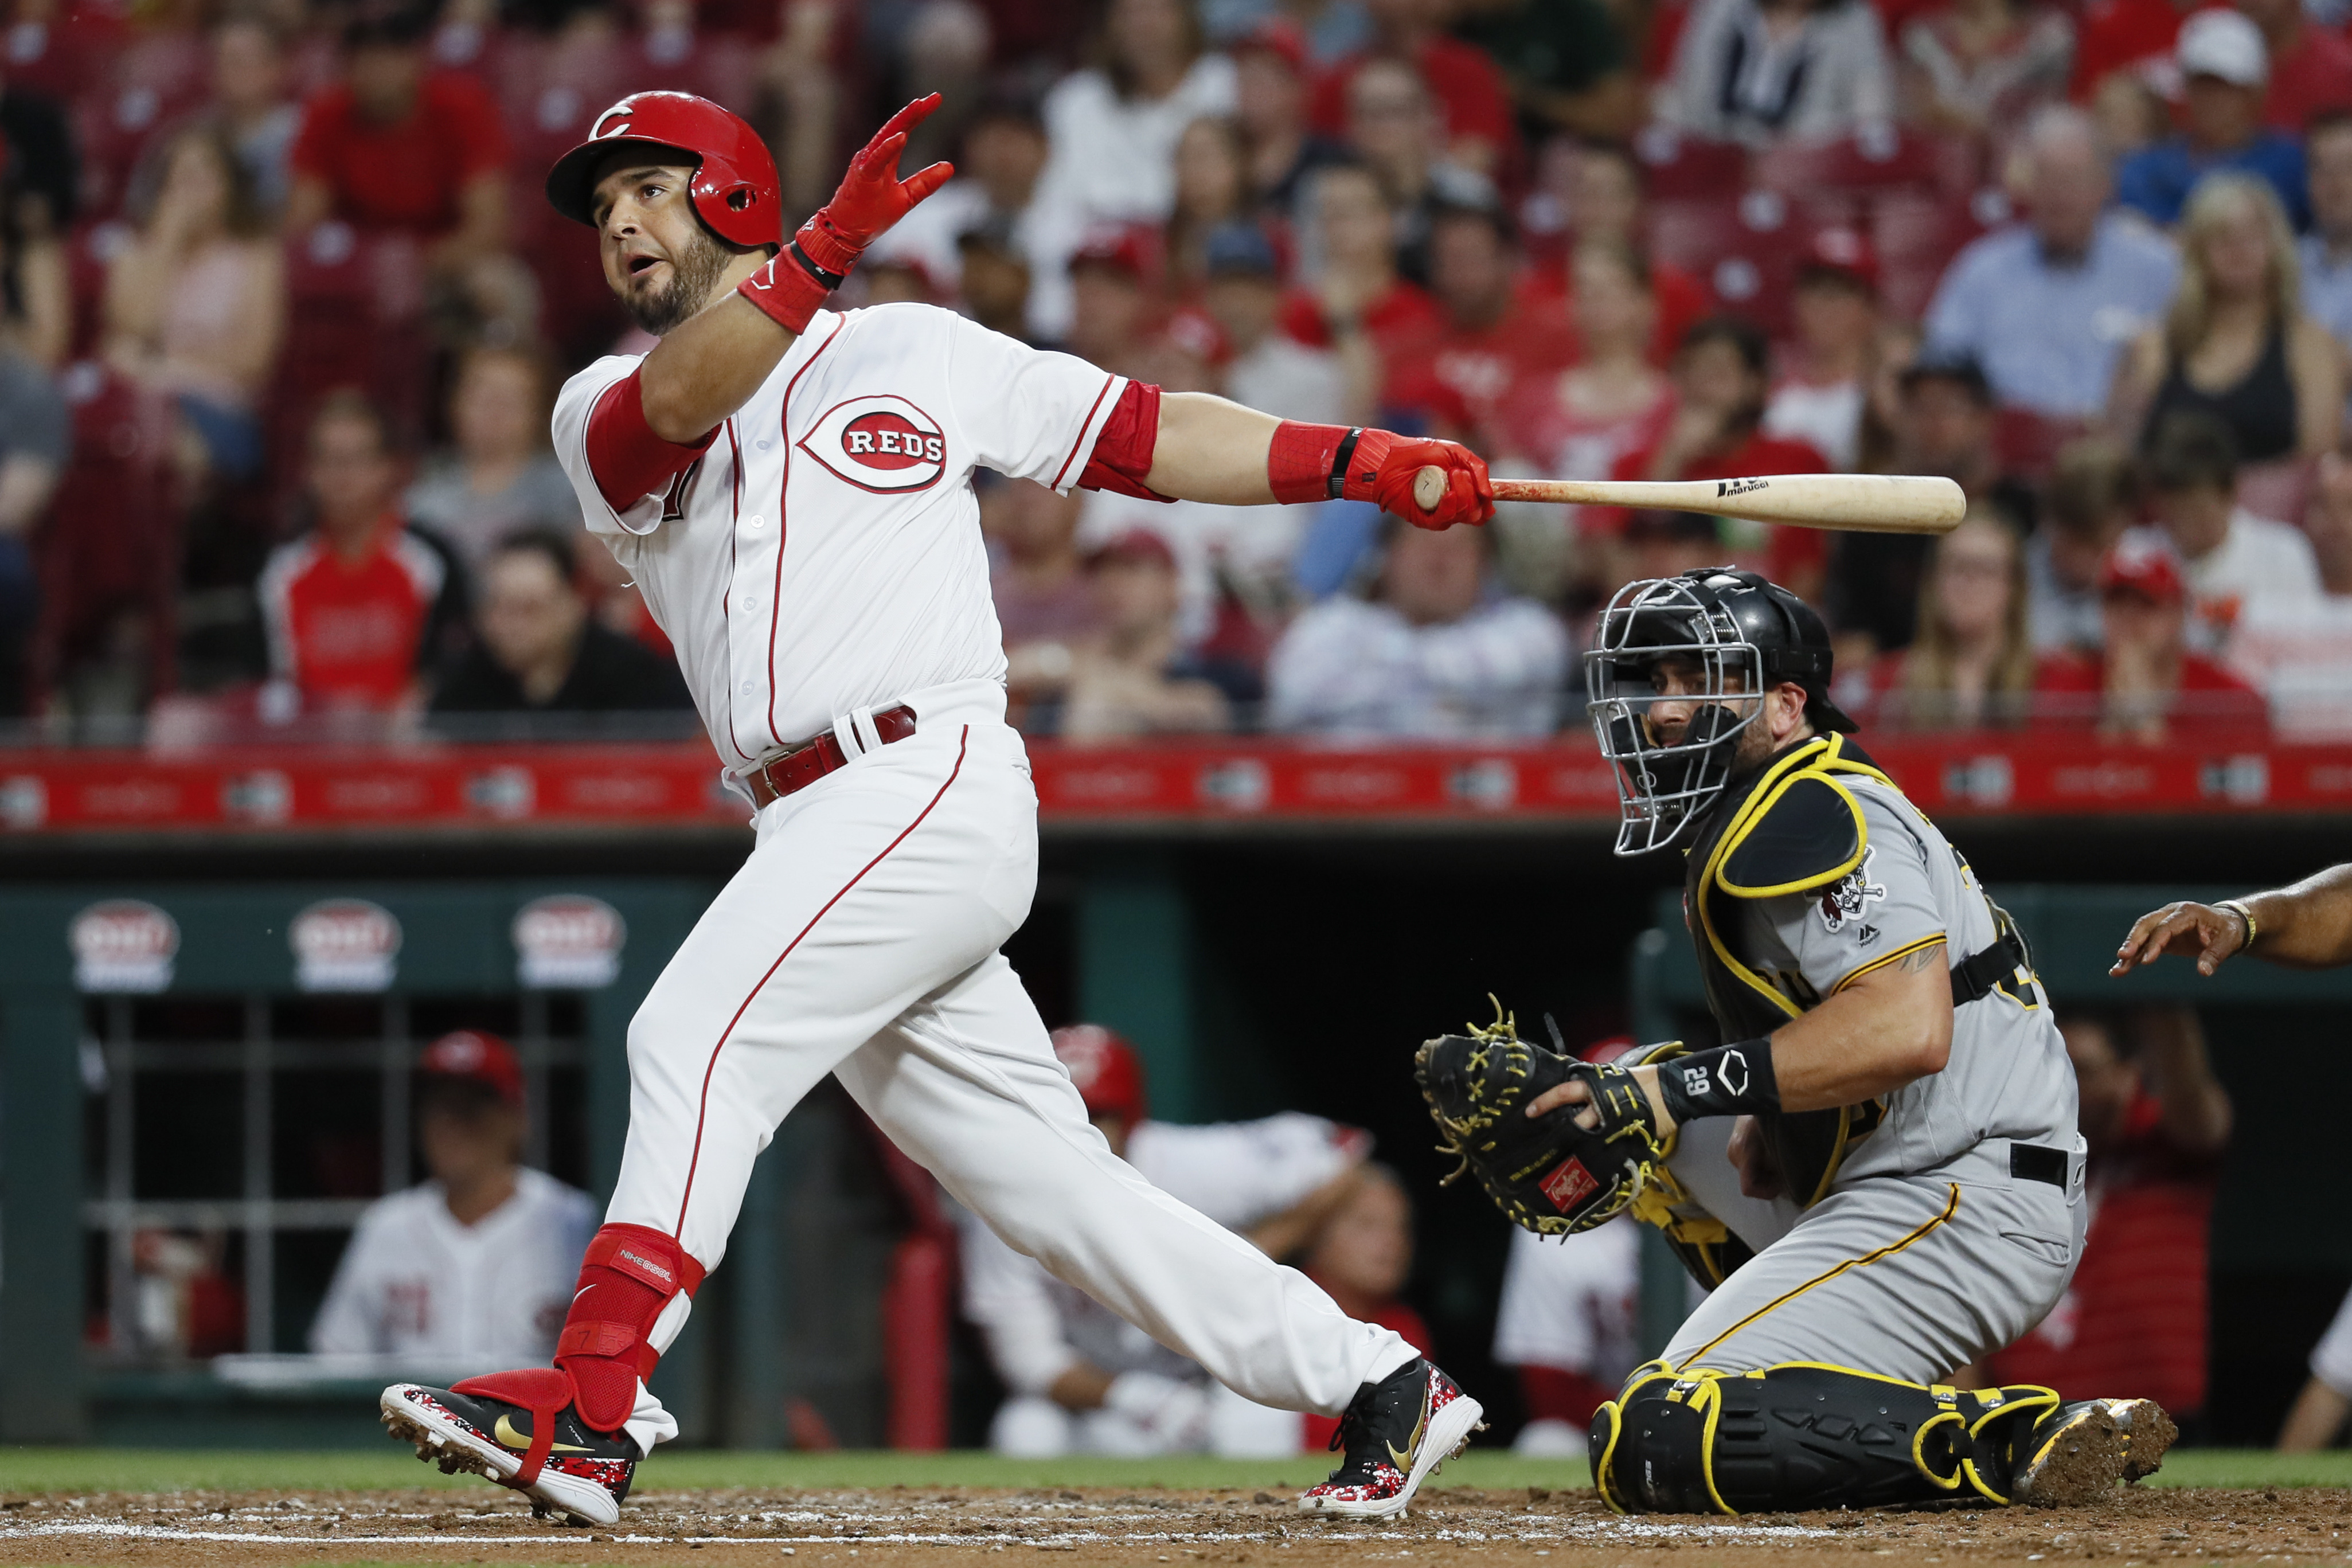 Cincinnati Reds' Eugenio Suarez watches his RBI double off Pittsburgh Pirates starting pitcher Jameson Taillon during the first inning of a baseball game, Tuesday, May 22, 2018, in Cincinnati. (AP Photo/John Minchillo)